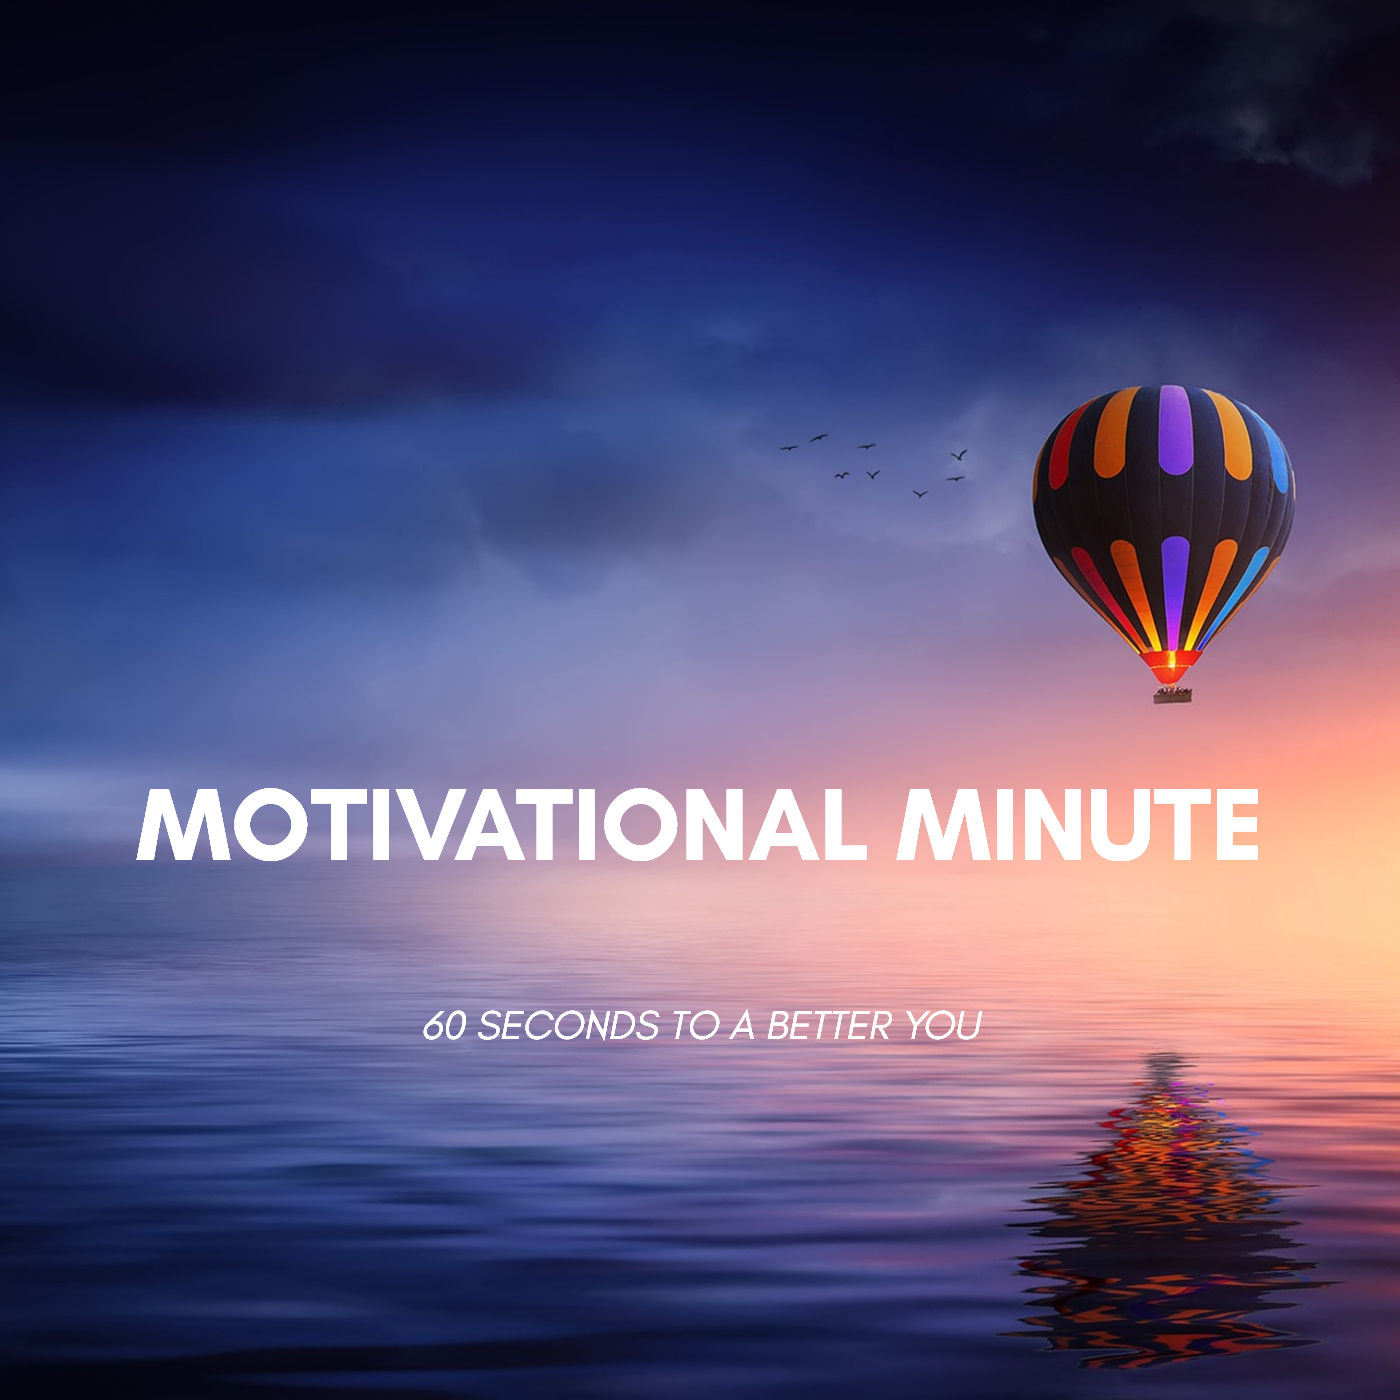 Motivational Minute  60 sec to a better you! Allie Theiss